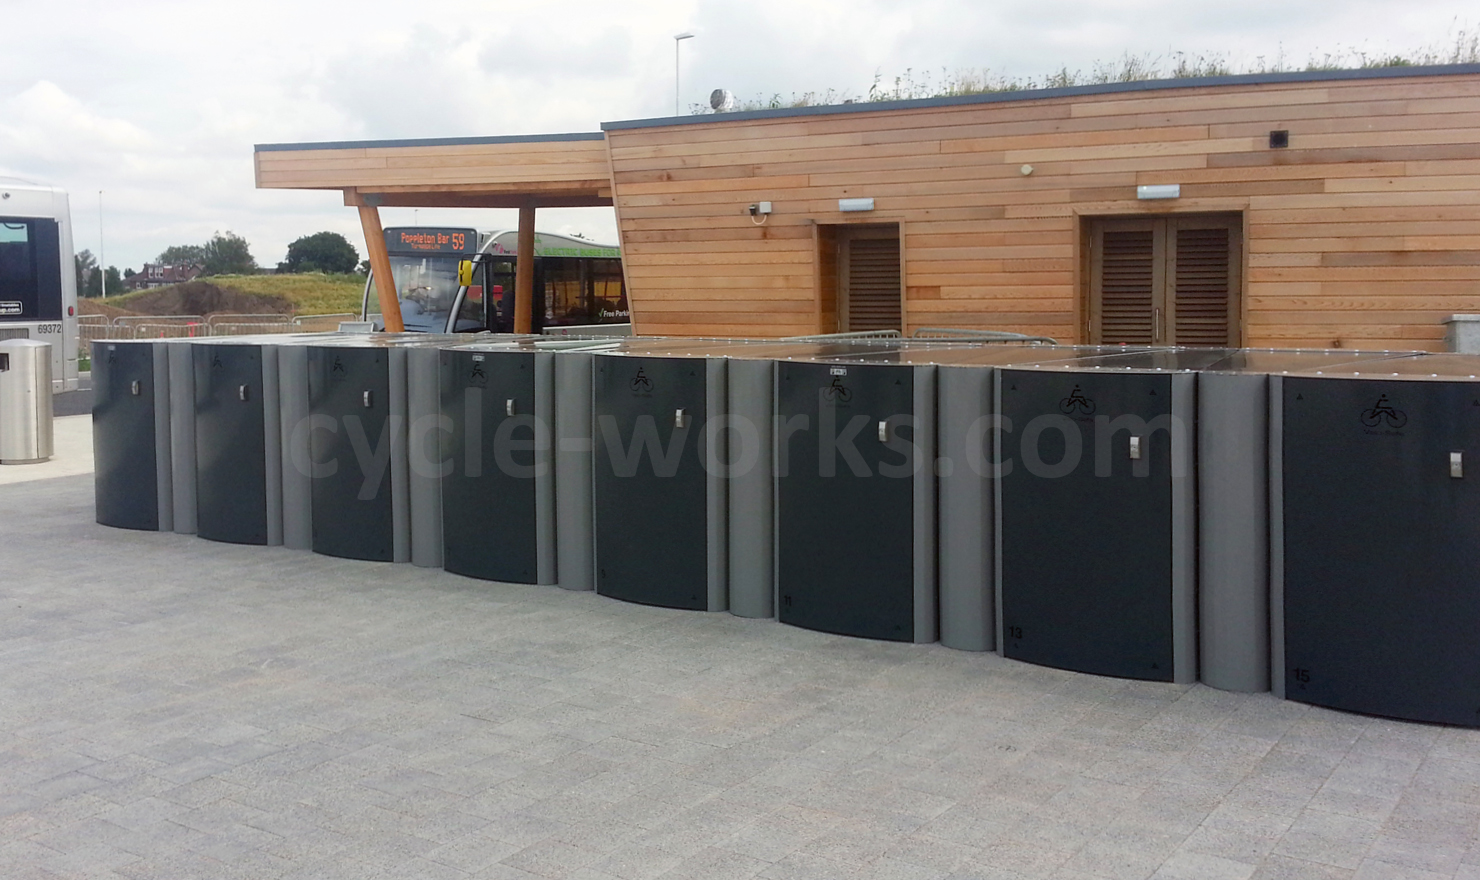 York Askham Bar Park and Ride Bike Lockers